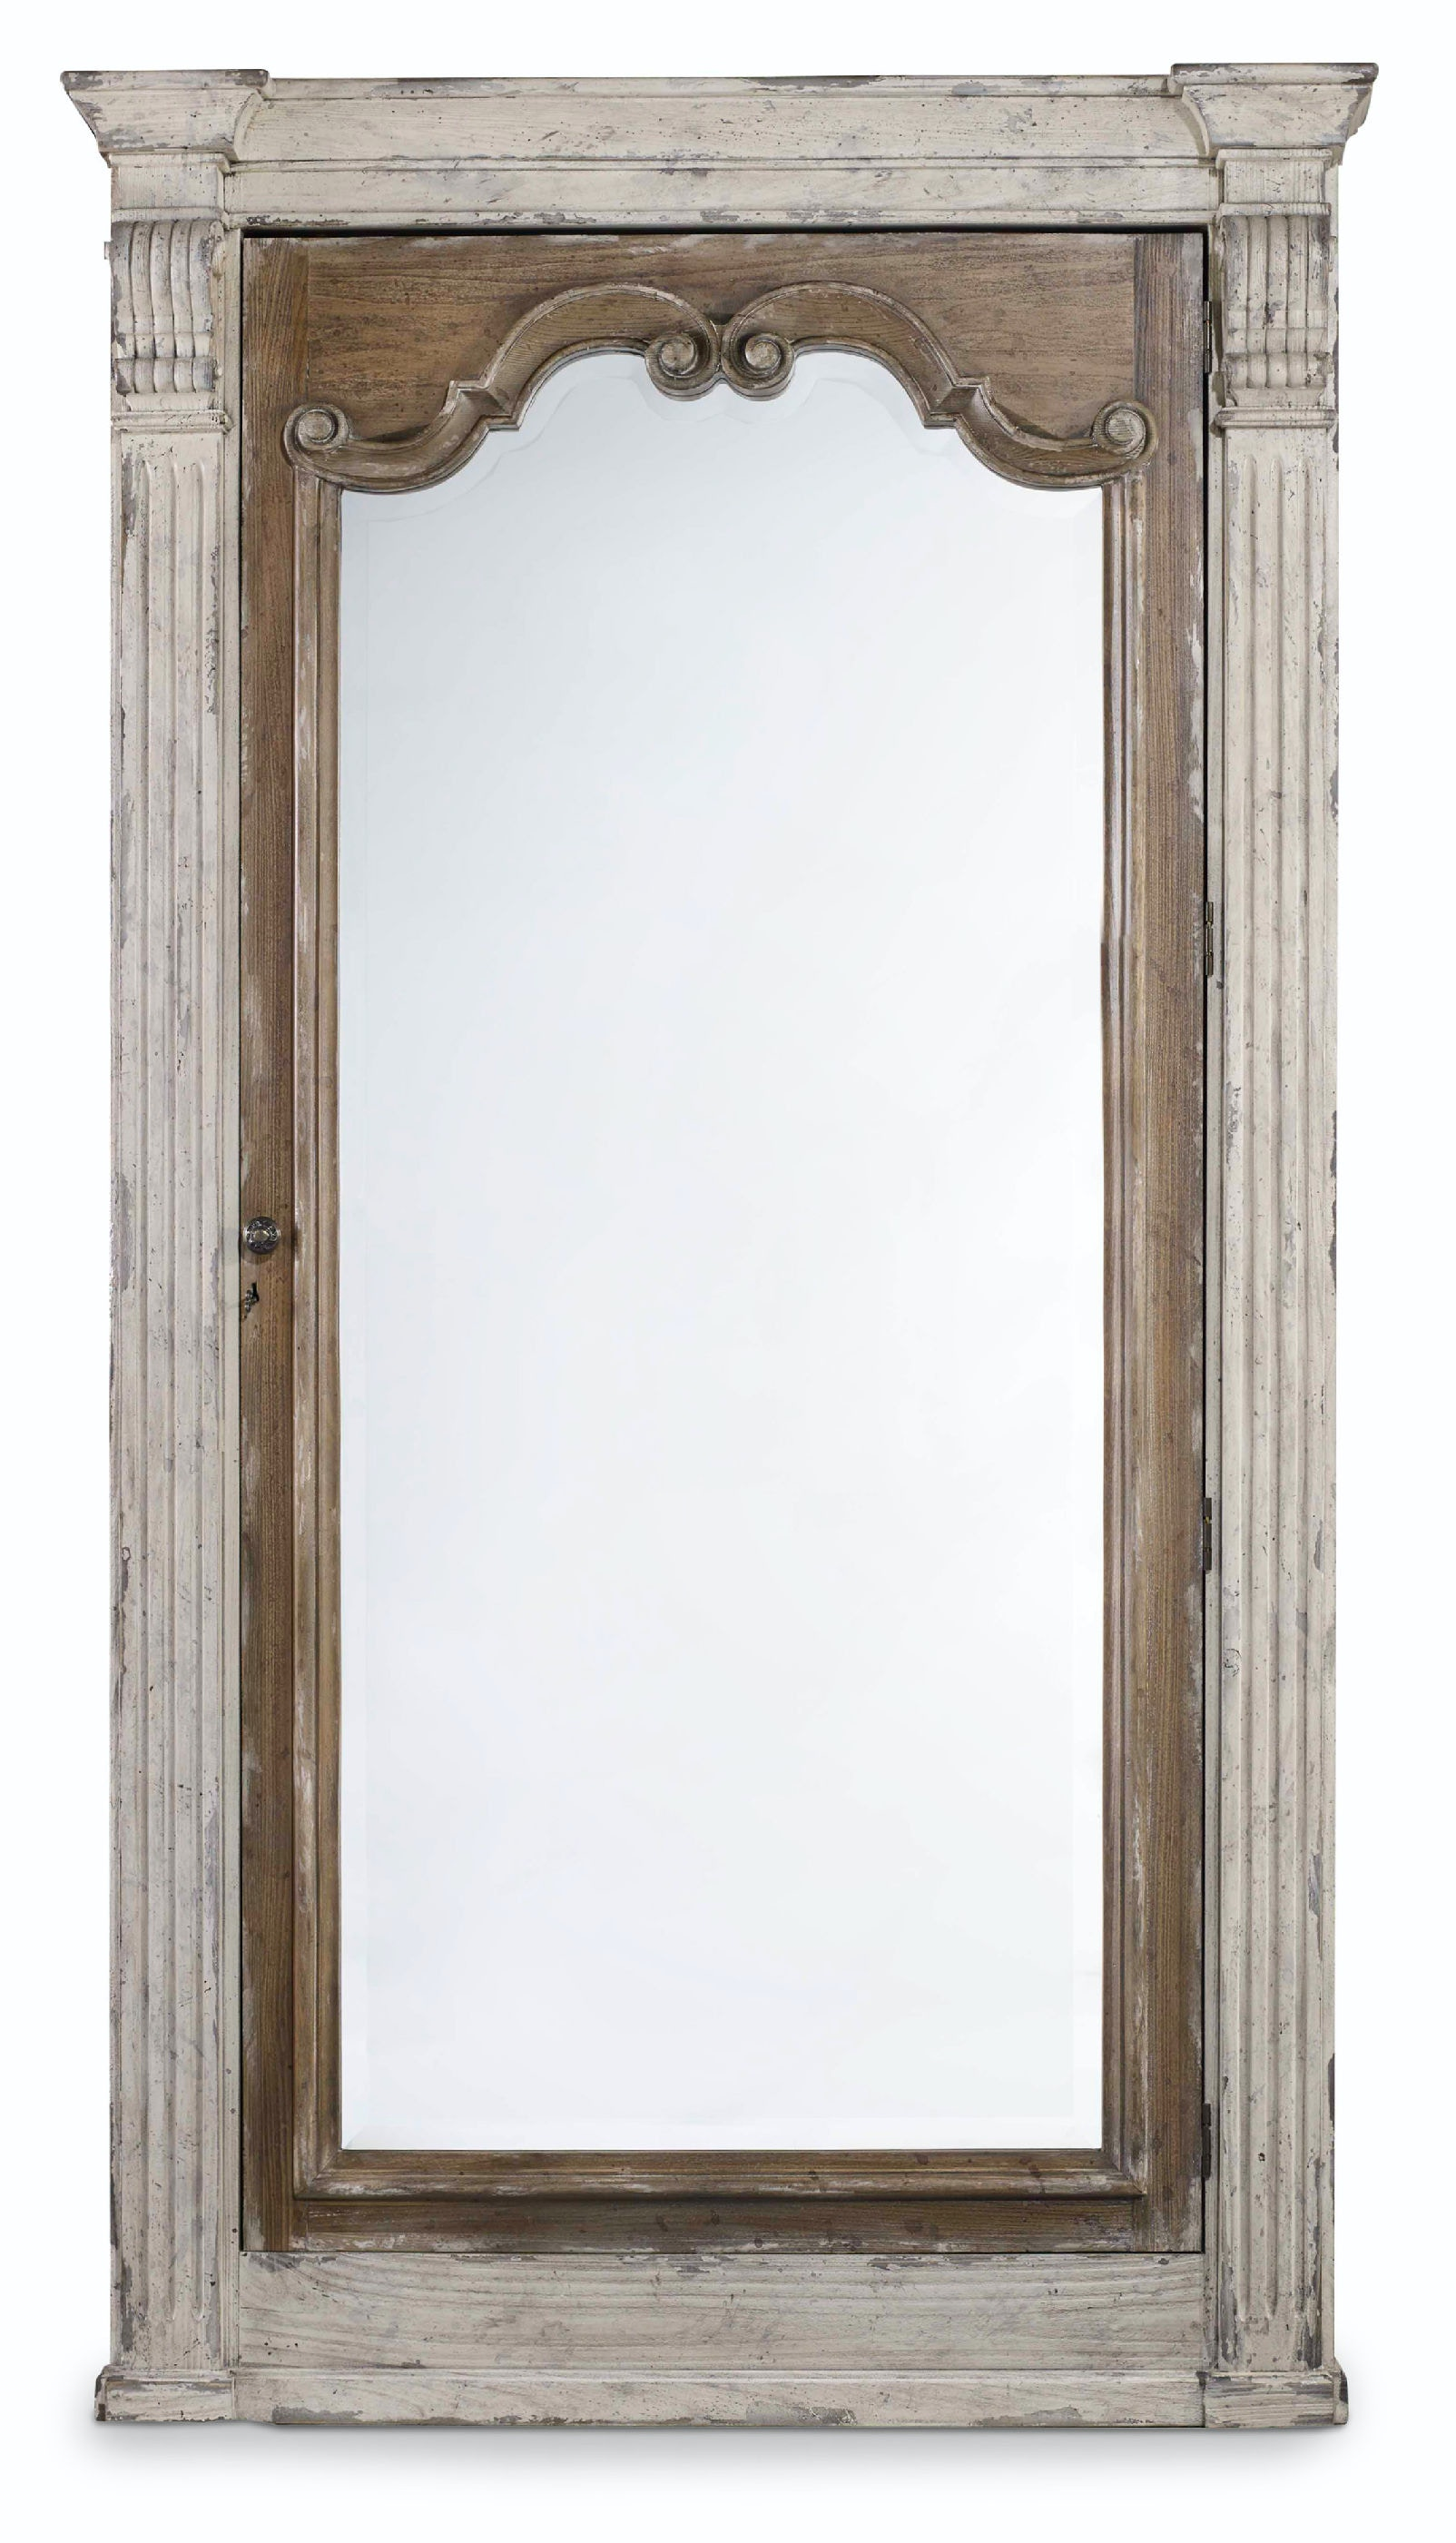 Where to buy wall mirrors in toronto